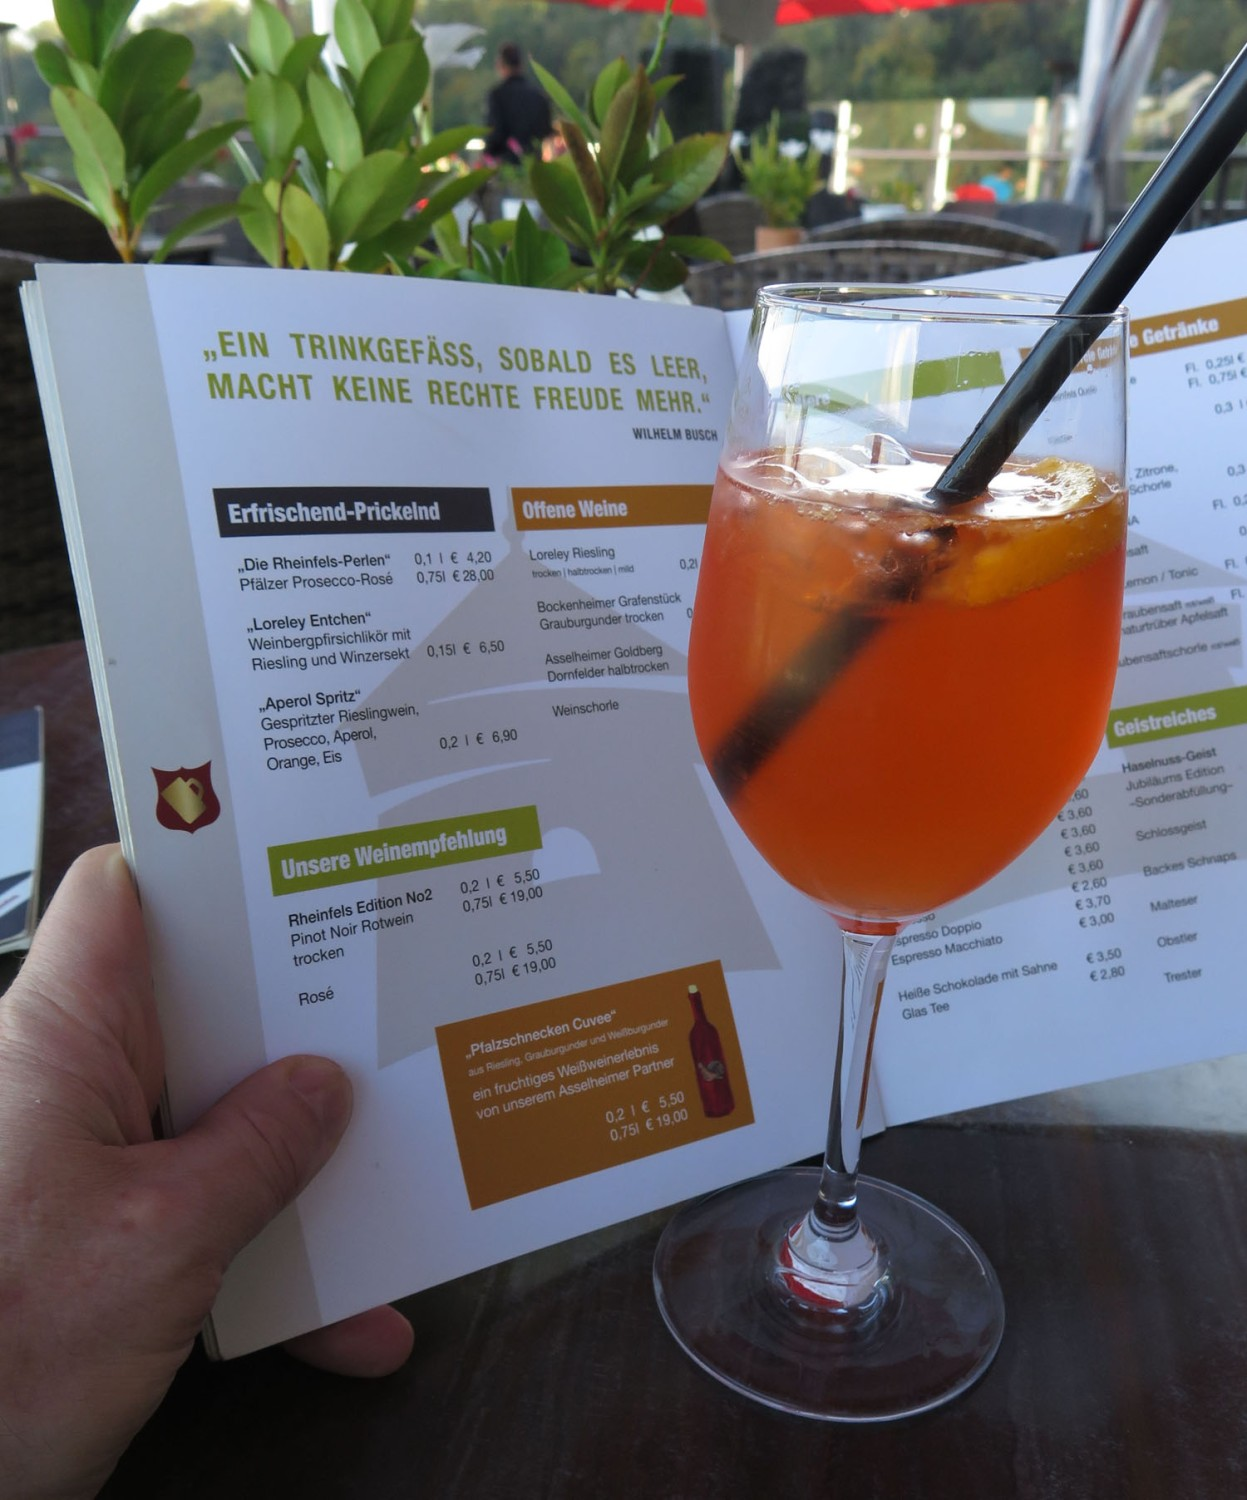 Germany-Rhine-River-Valley-Food-And-Drink-Aperol-Spritz